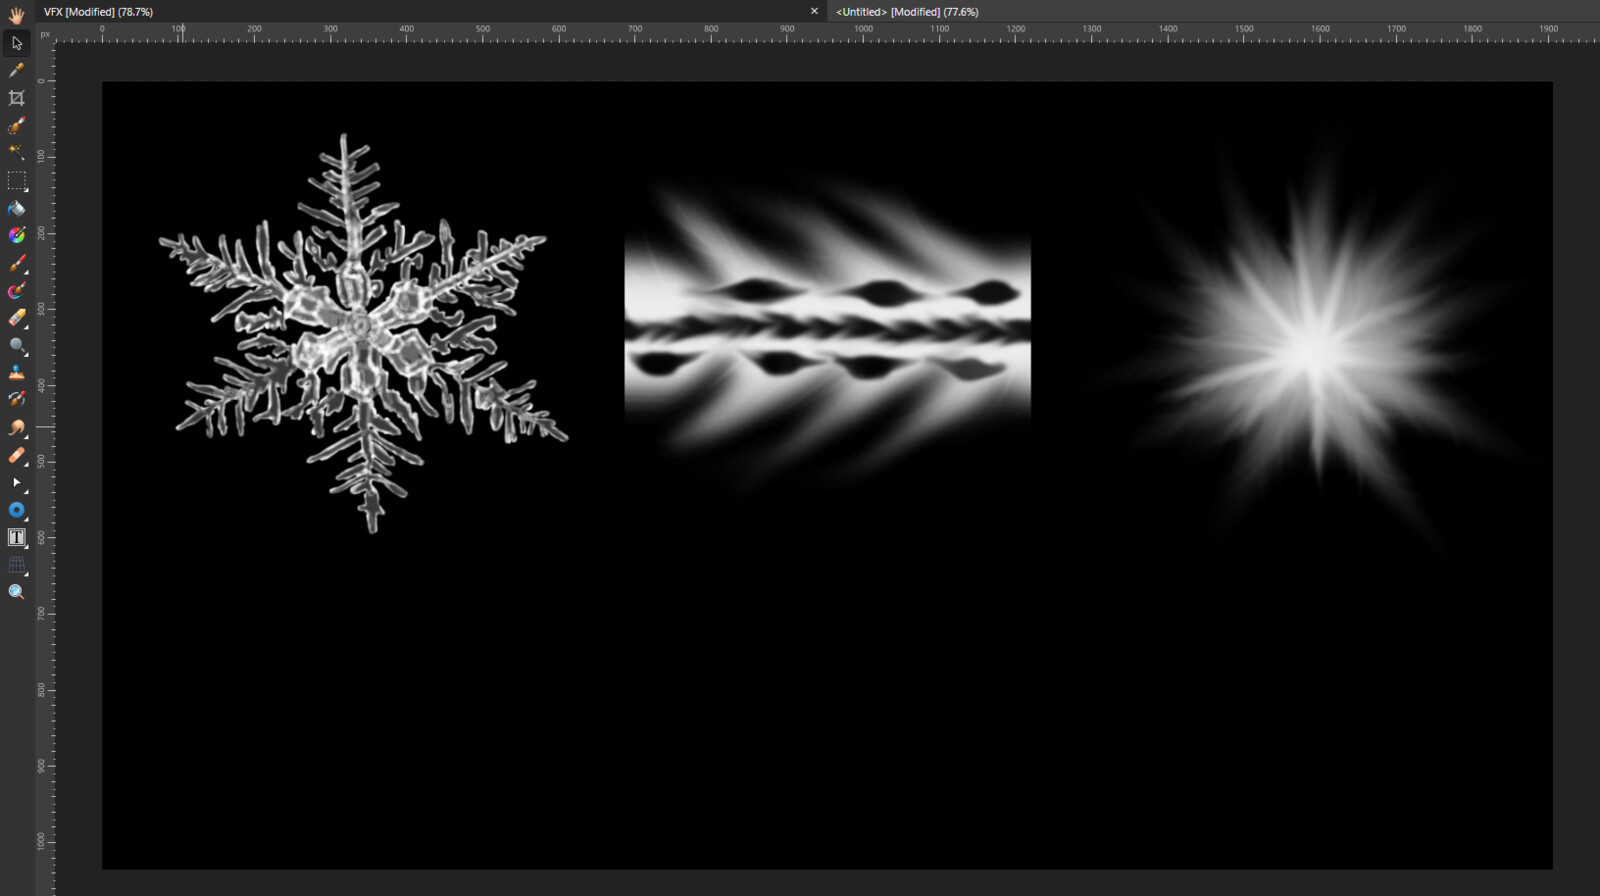 New Textures made for this projectile in affinity photo